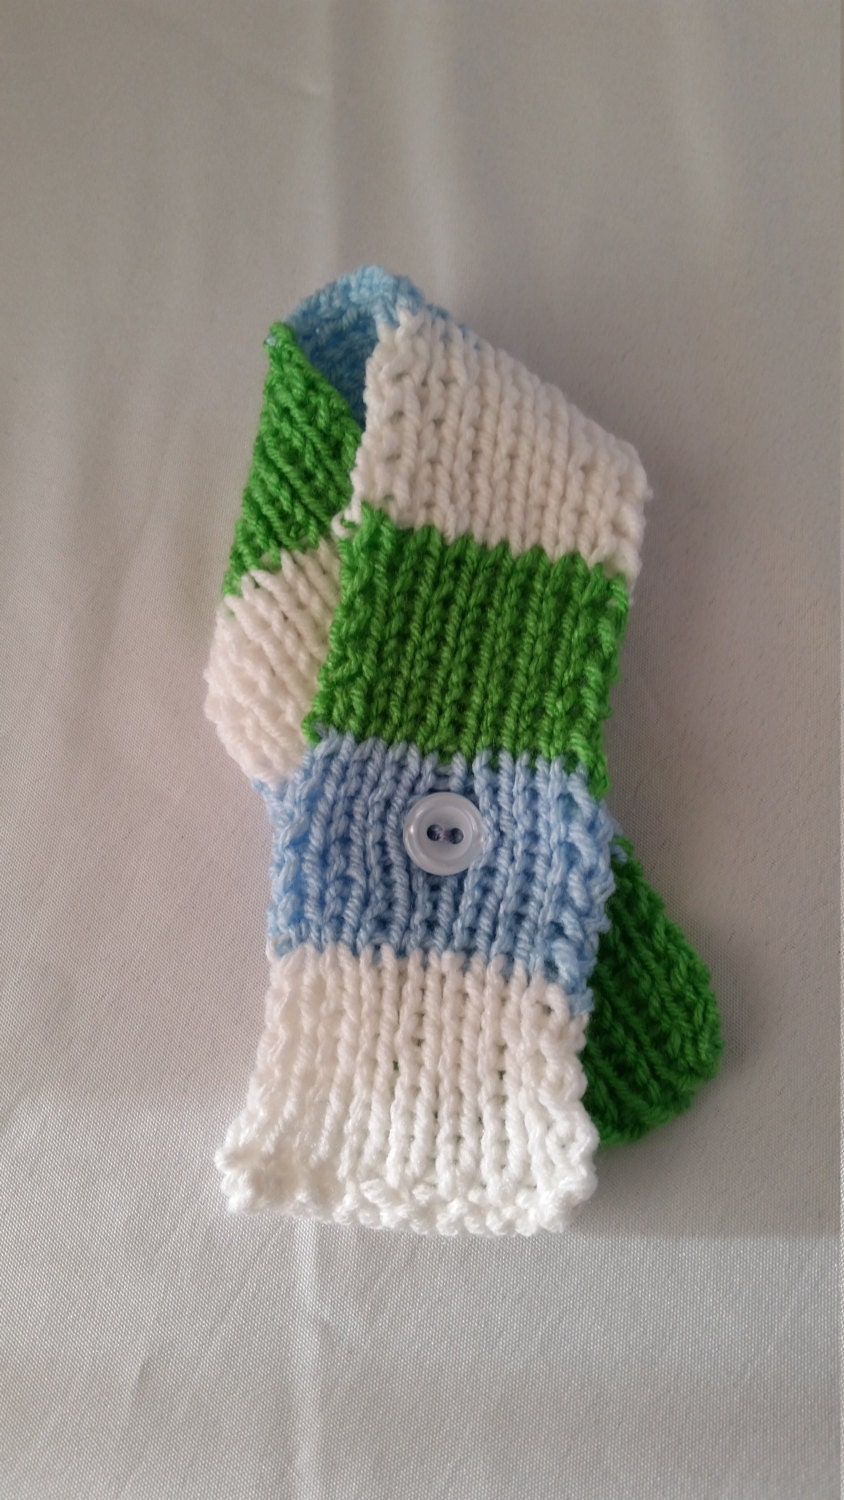 knitted pet scarf for cats or small dogs